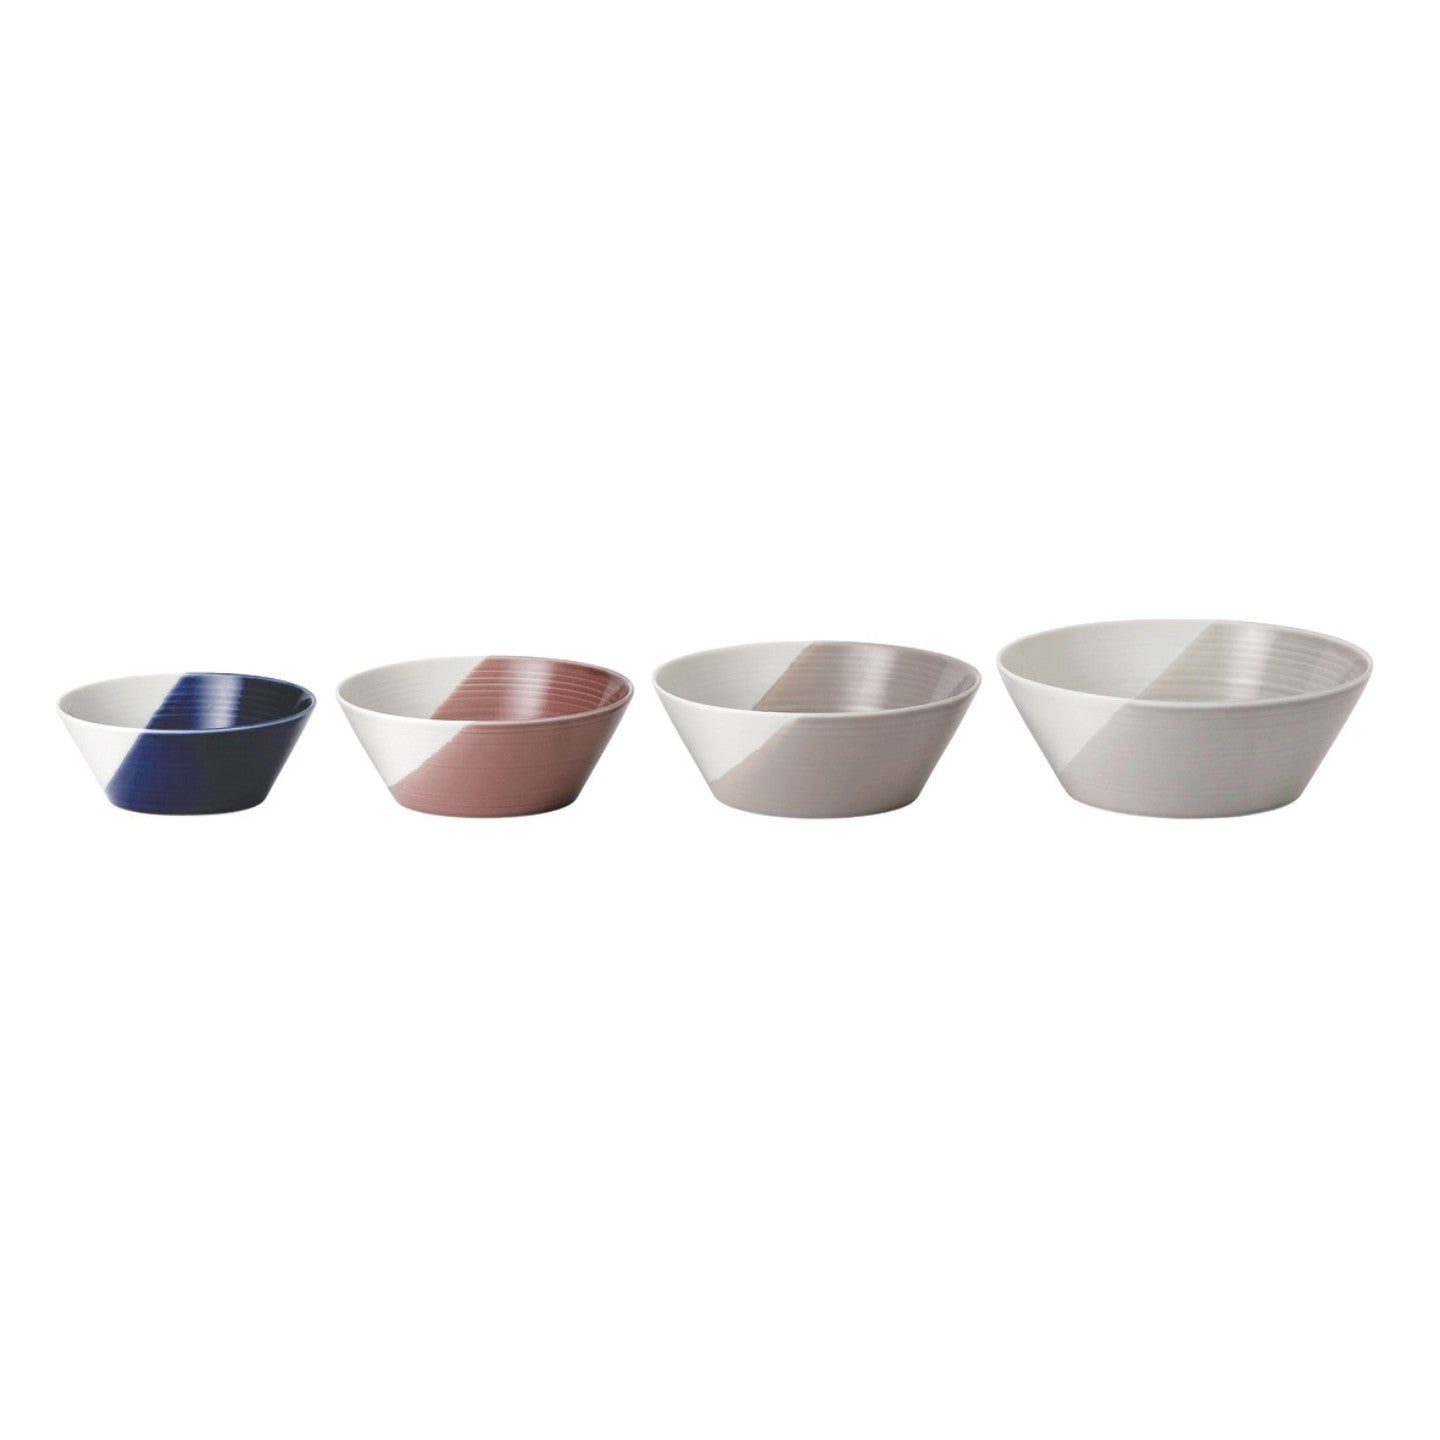 Bowls of Plenty Set of 4 Plates Nesting Bowls